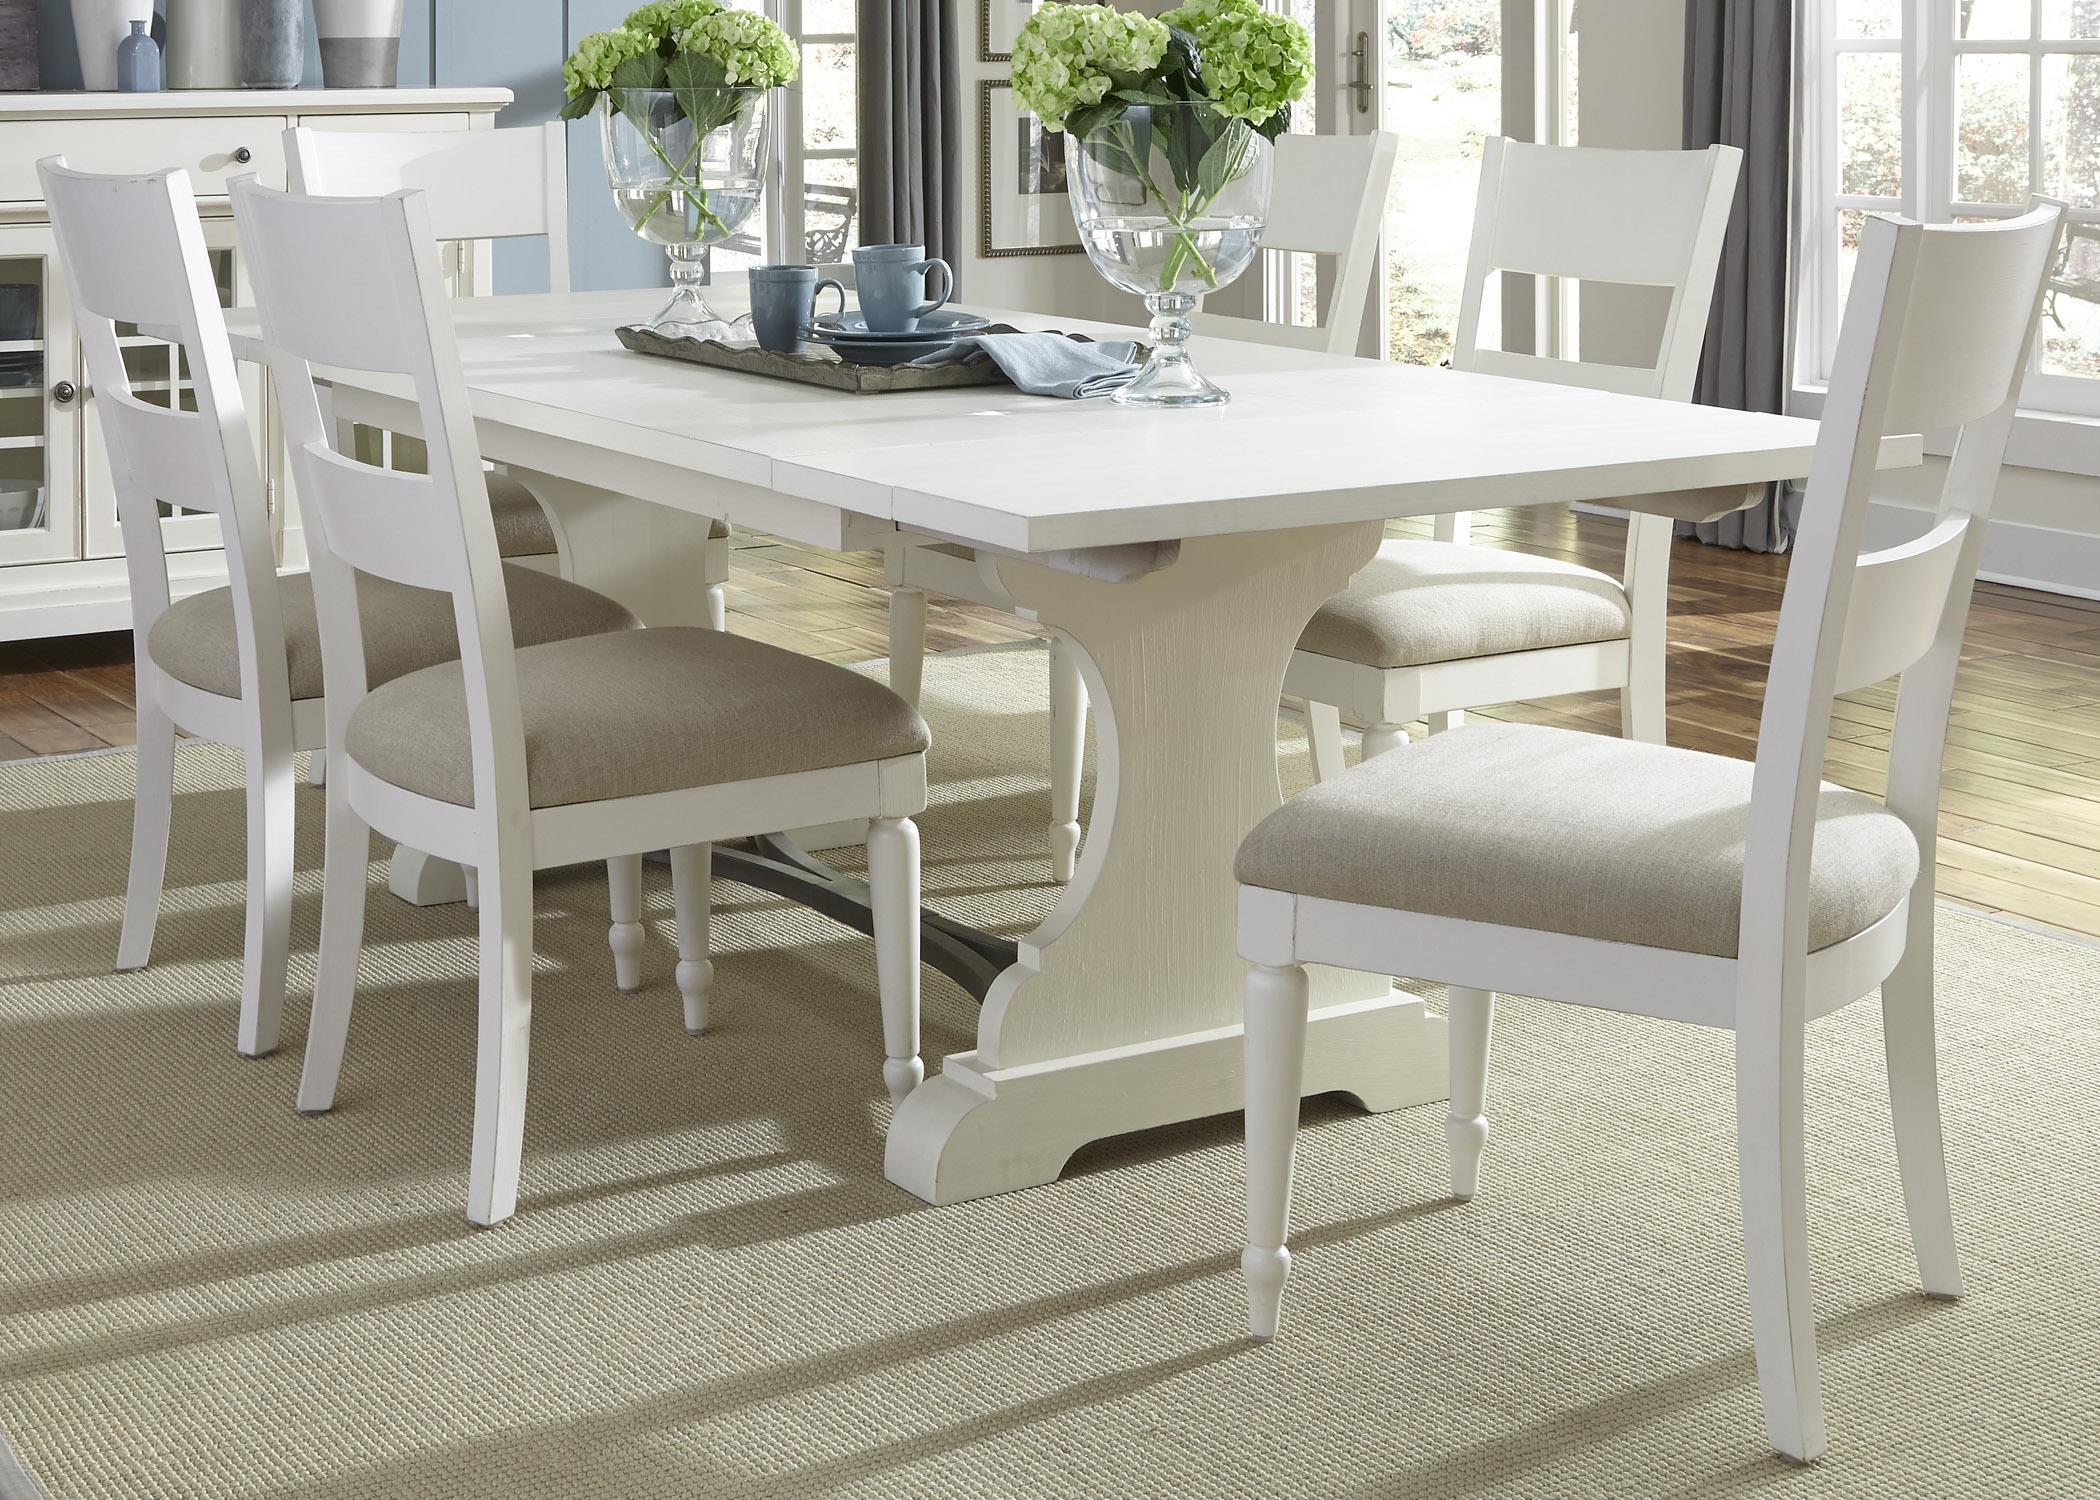 Liberty Furniture Harbor View Trestle Table and Chair Set - Item Number: 631-DR-7TRS